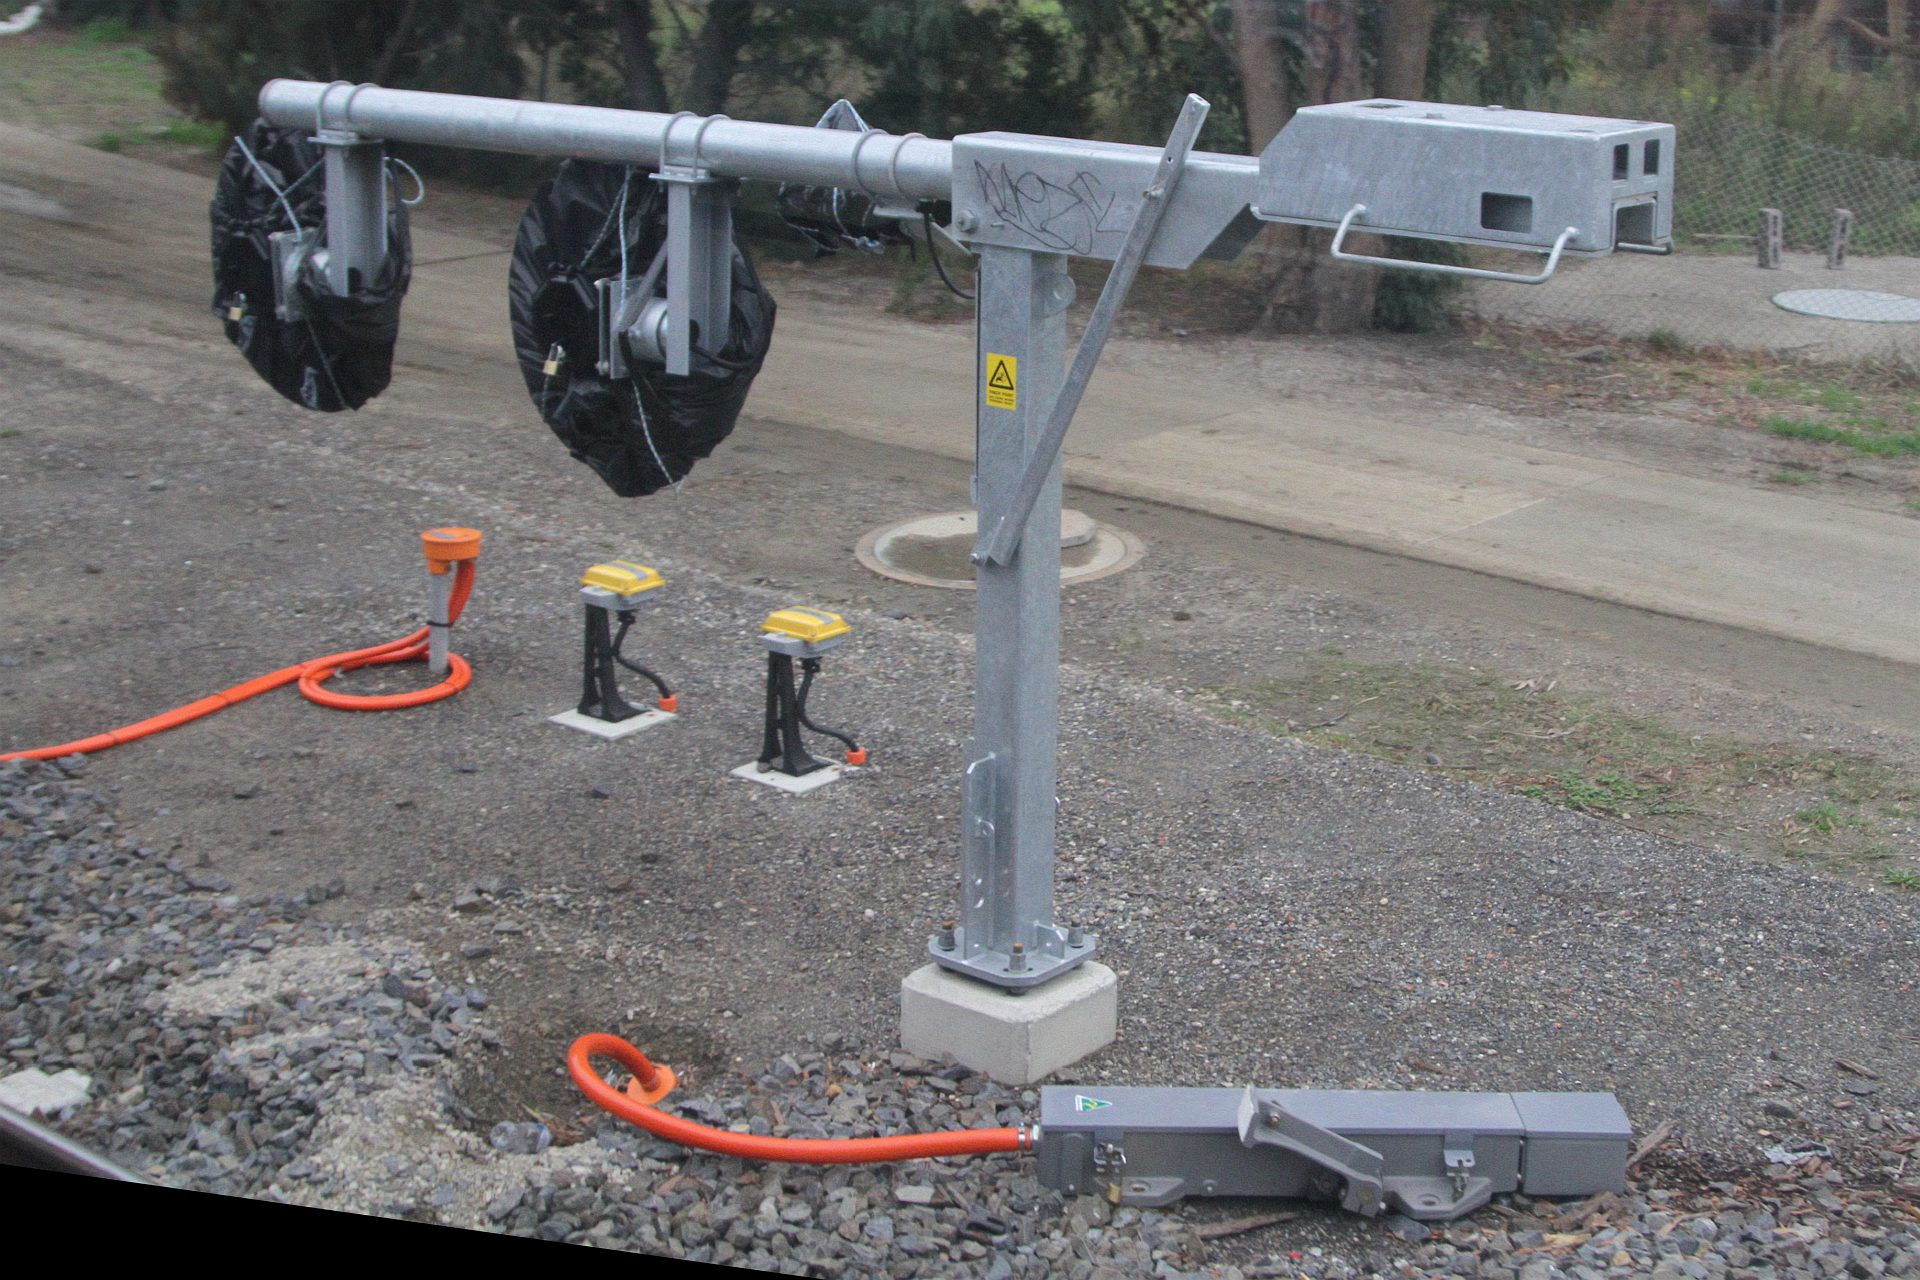 New tilt mast signal and trainstop awaiting commissioning at